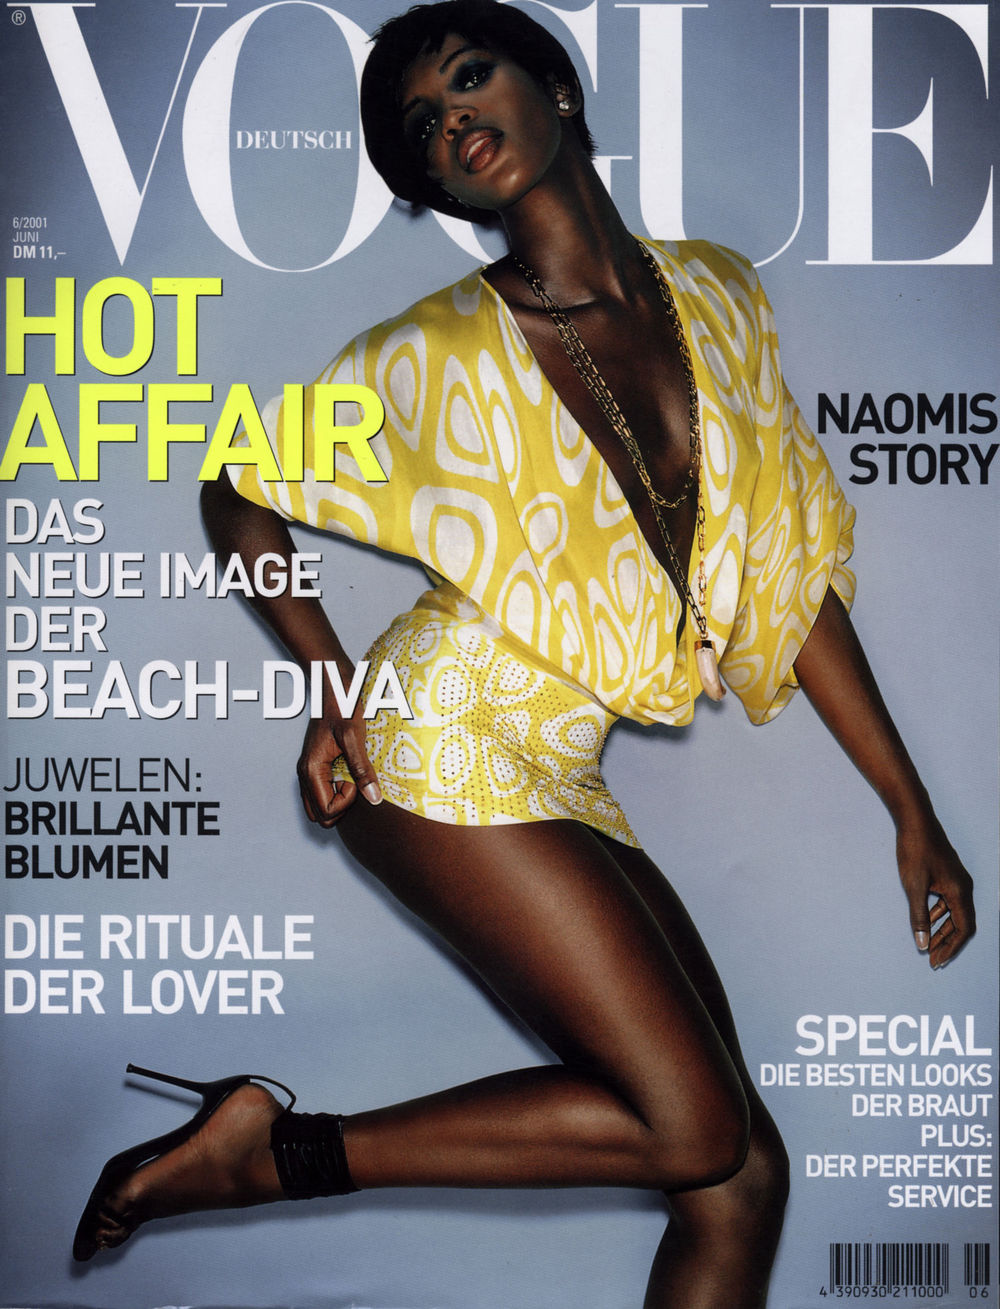 Vogue S Covers Gigi Hadid: Vogue's Covers: Naomi Campbell